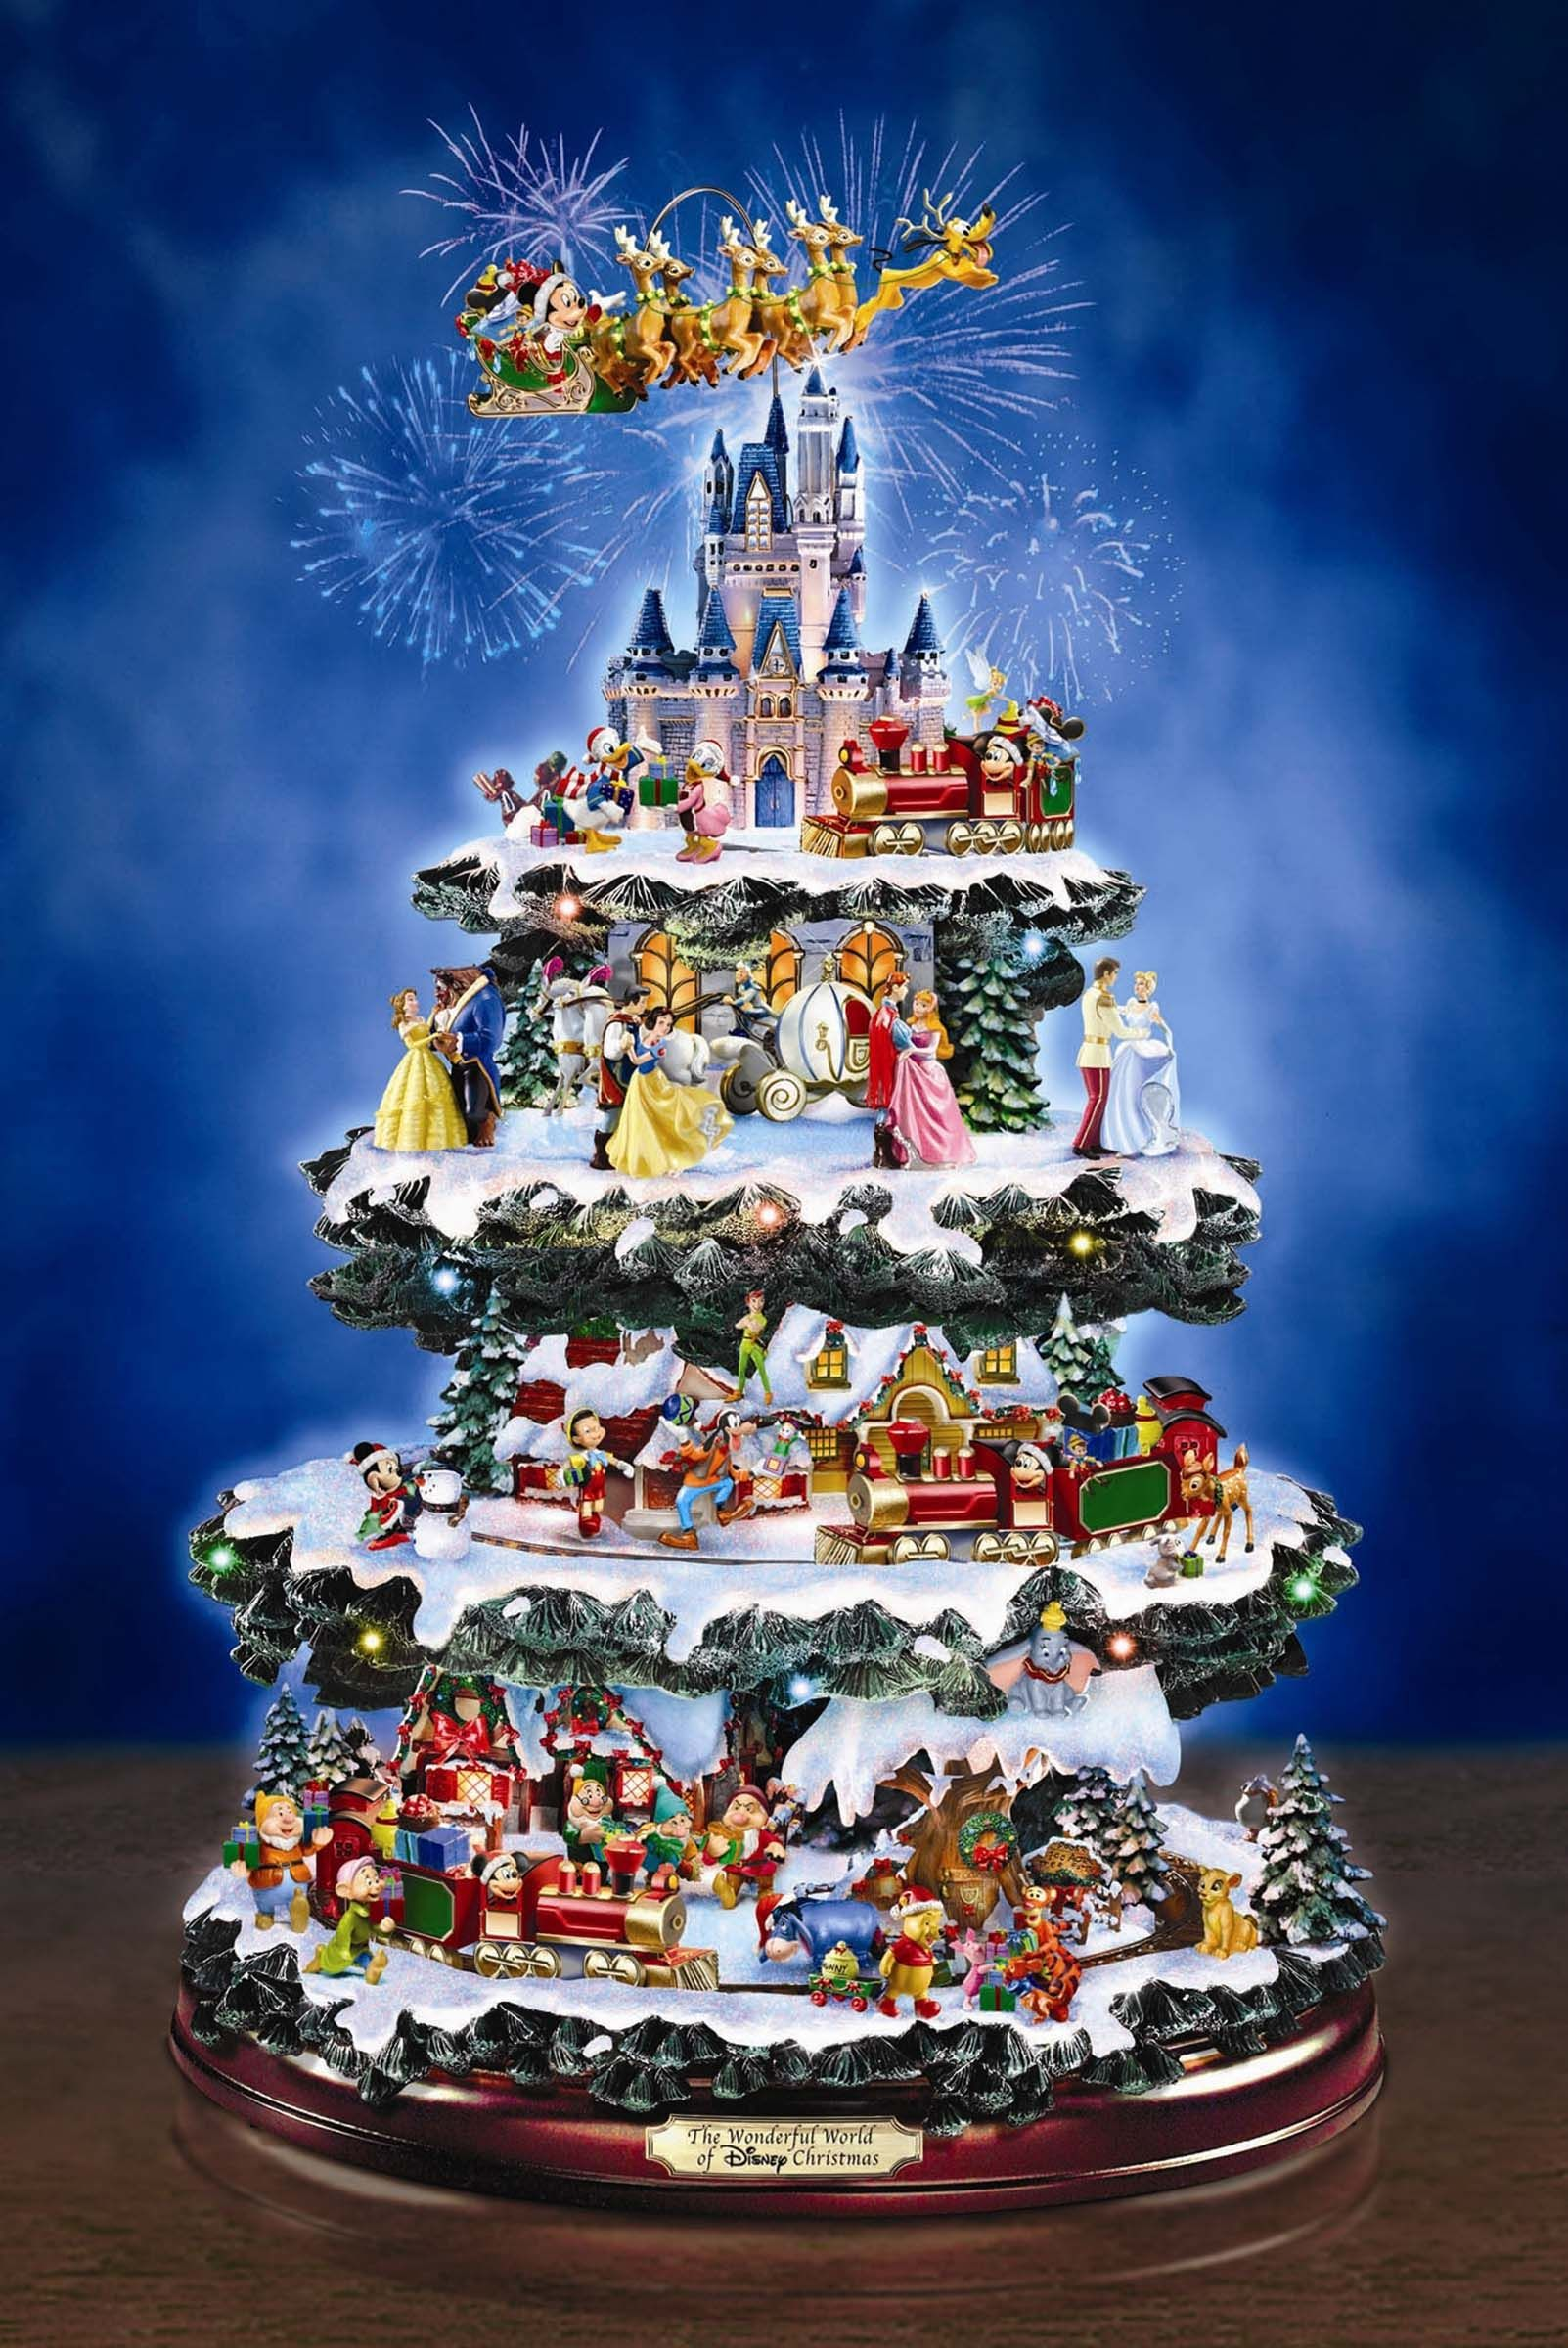 O Christmas Tree Disney Style Tish This Is For U This